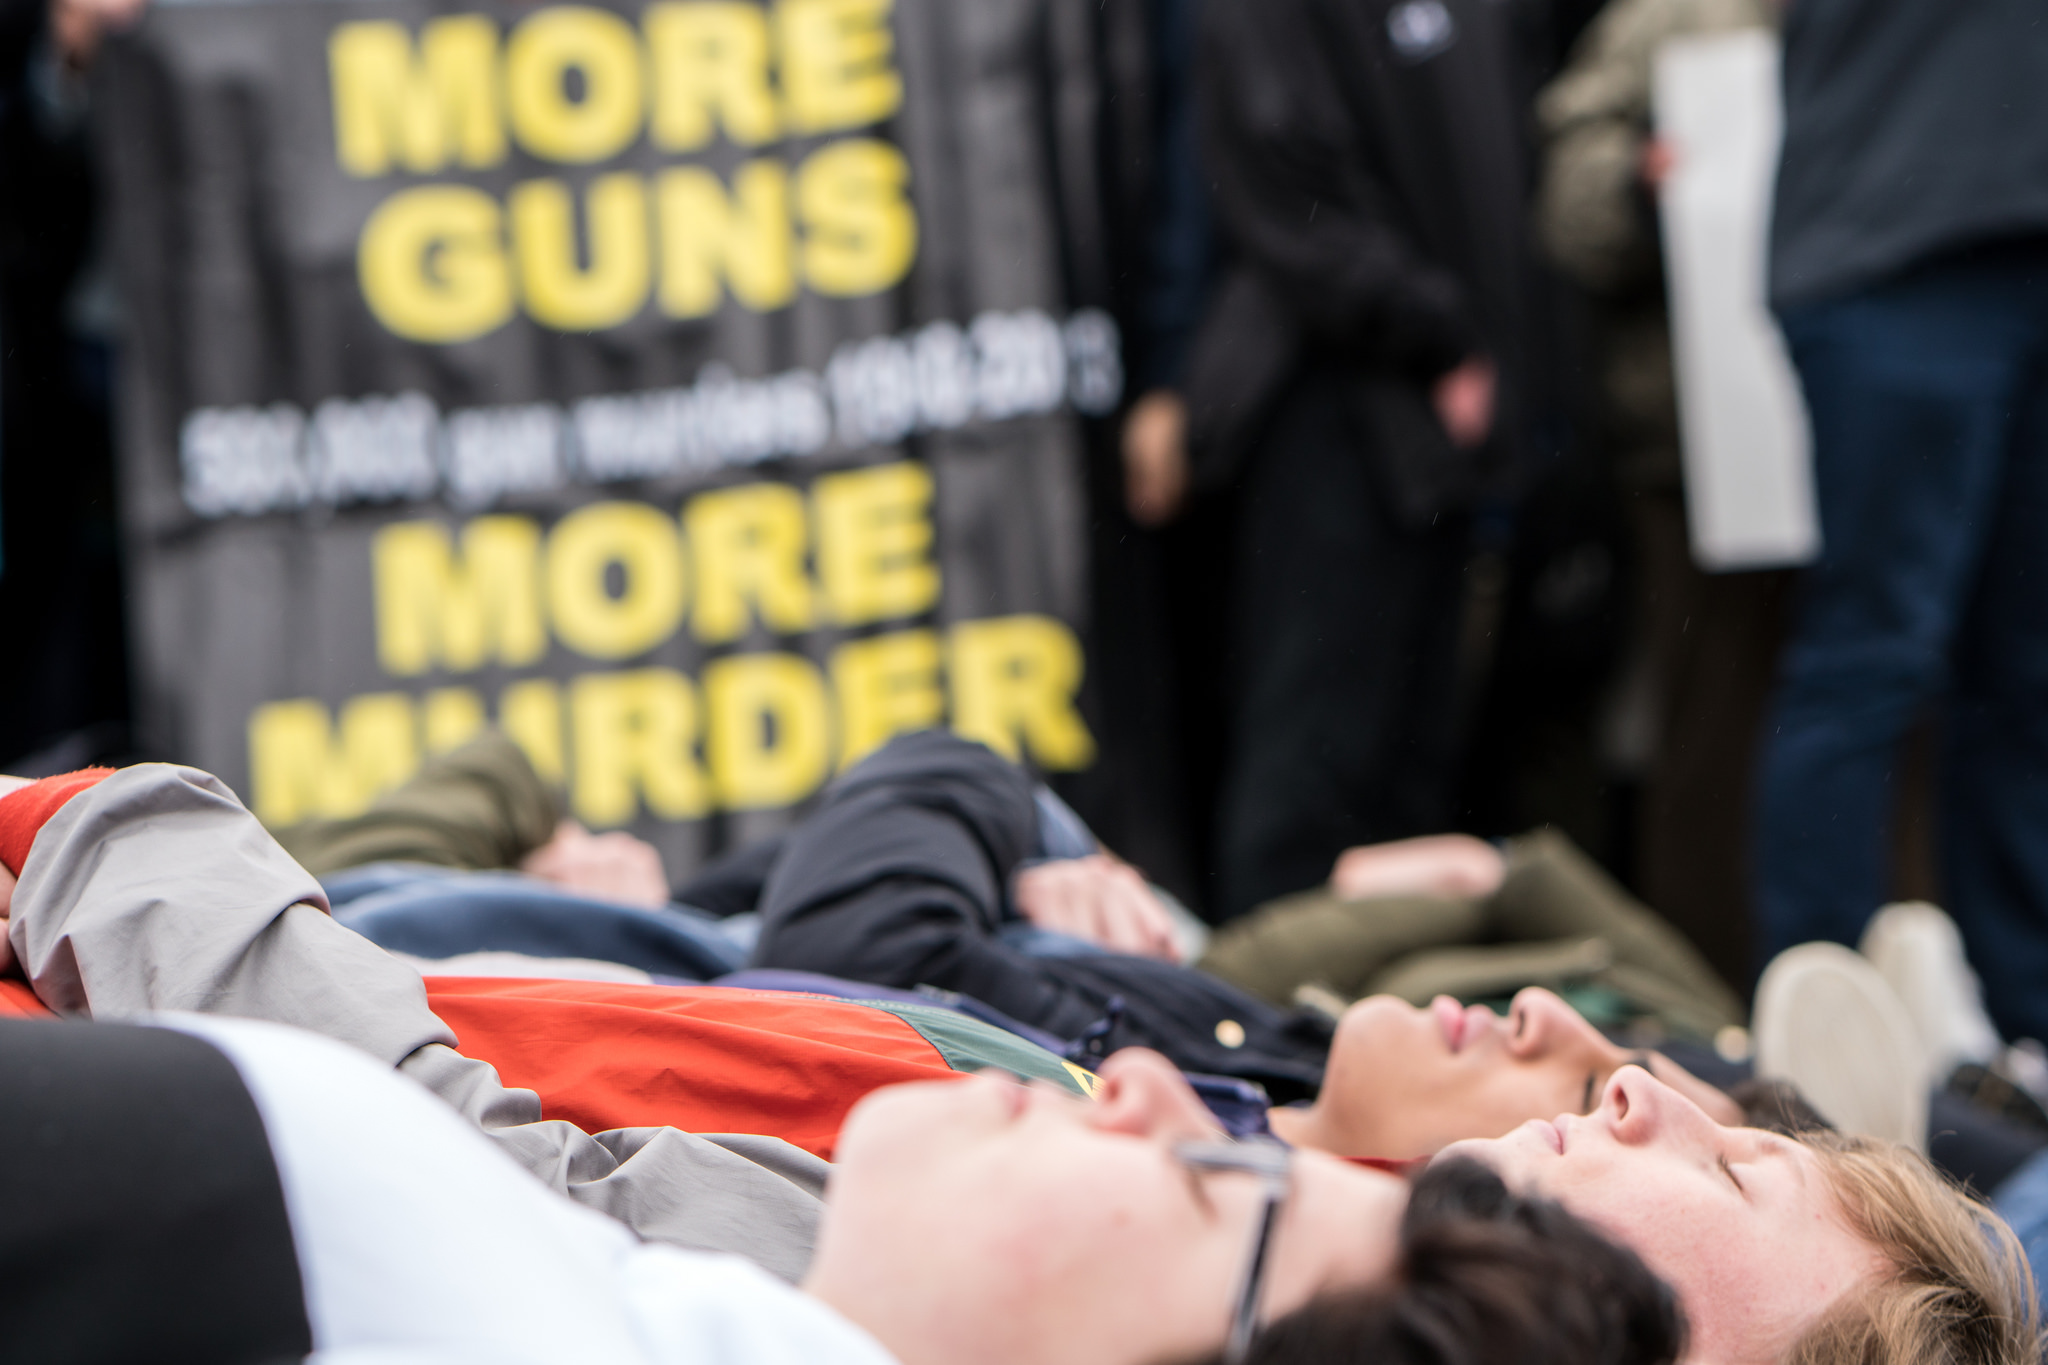 Die-in demonstration in February 2018 organized by Teens For Gun Reform in wake of the shooting at Marjory Stoneman Douglas High School in Parkland, Florida. (Lorie Shaull via Flickr)